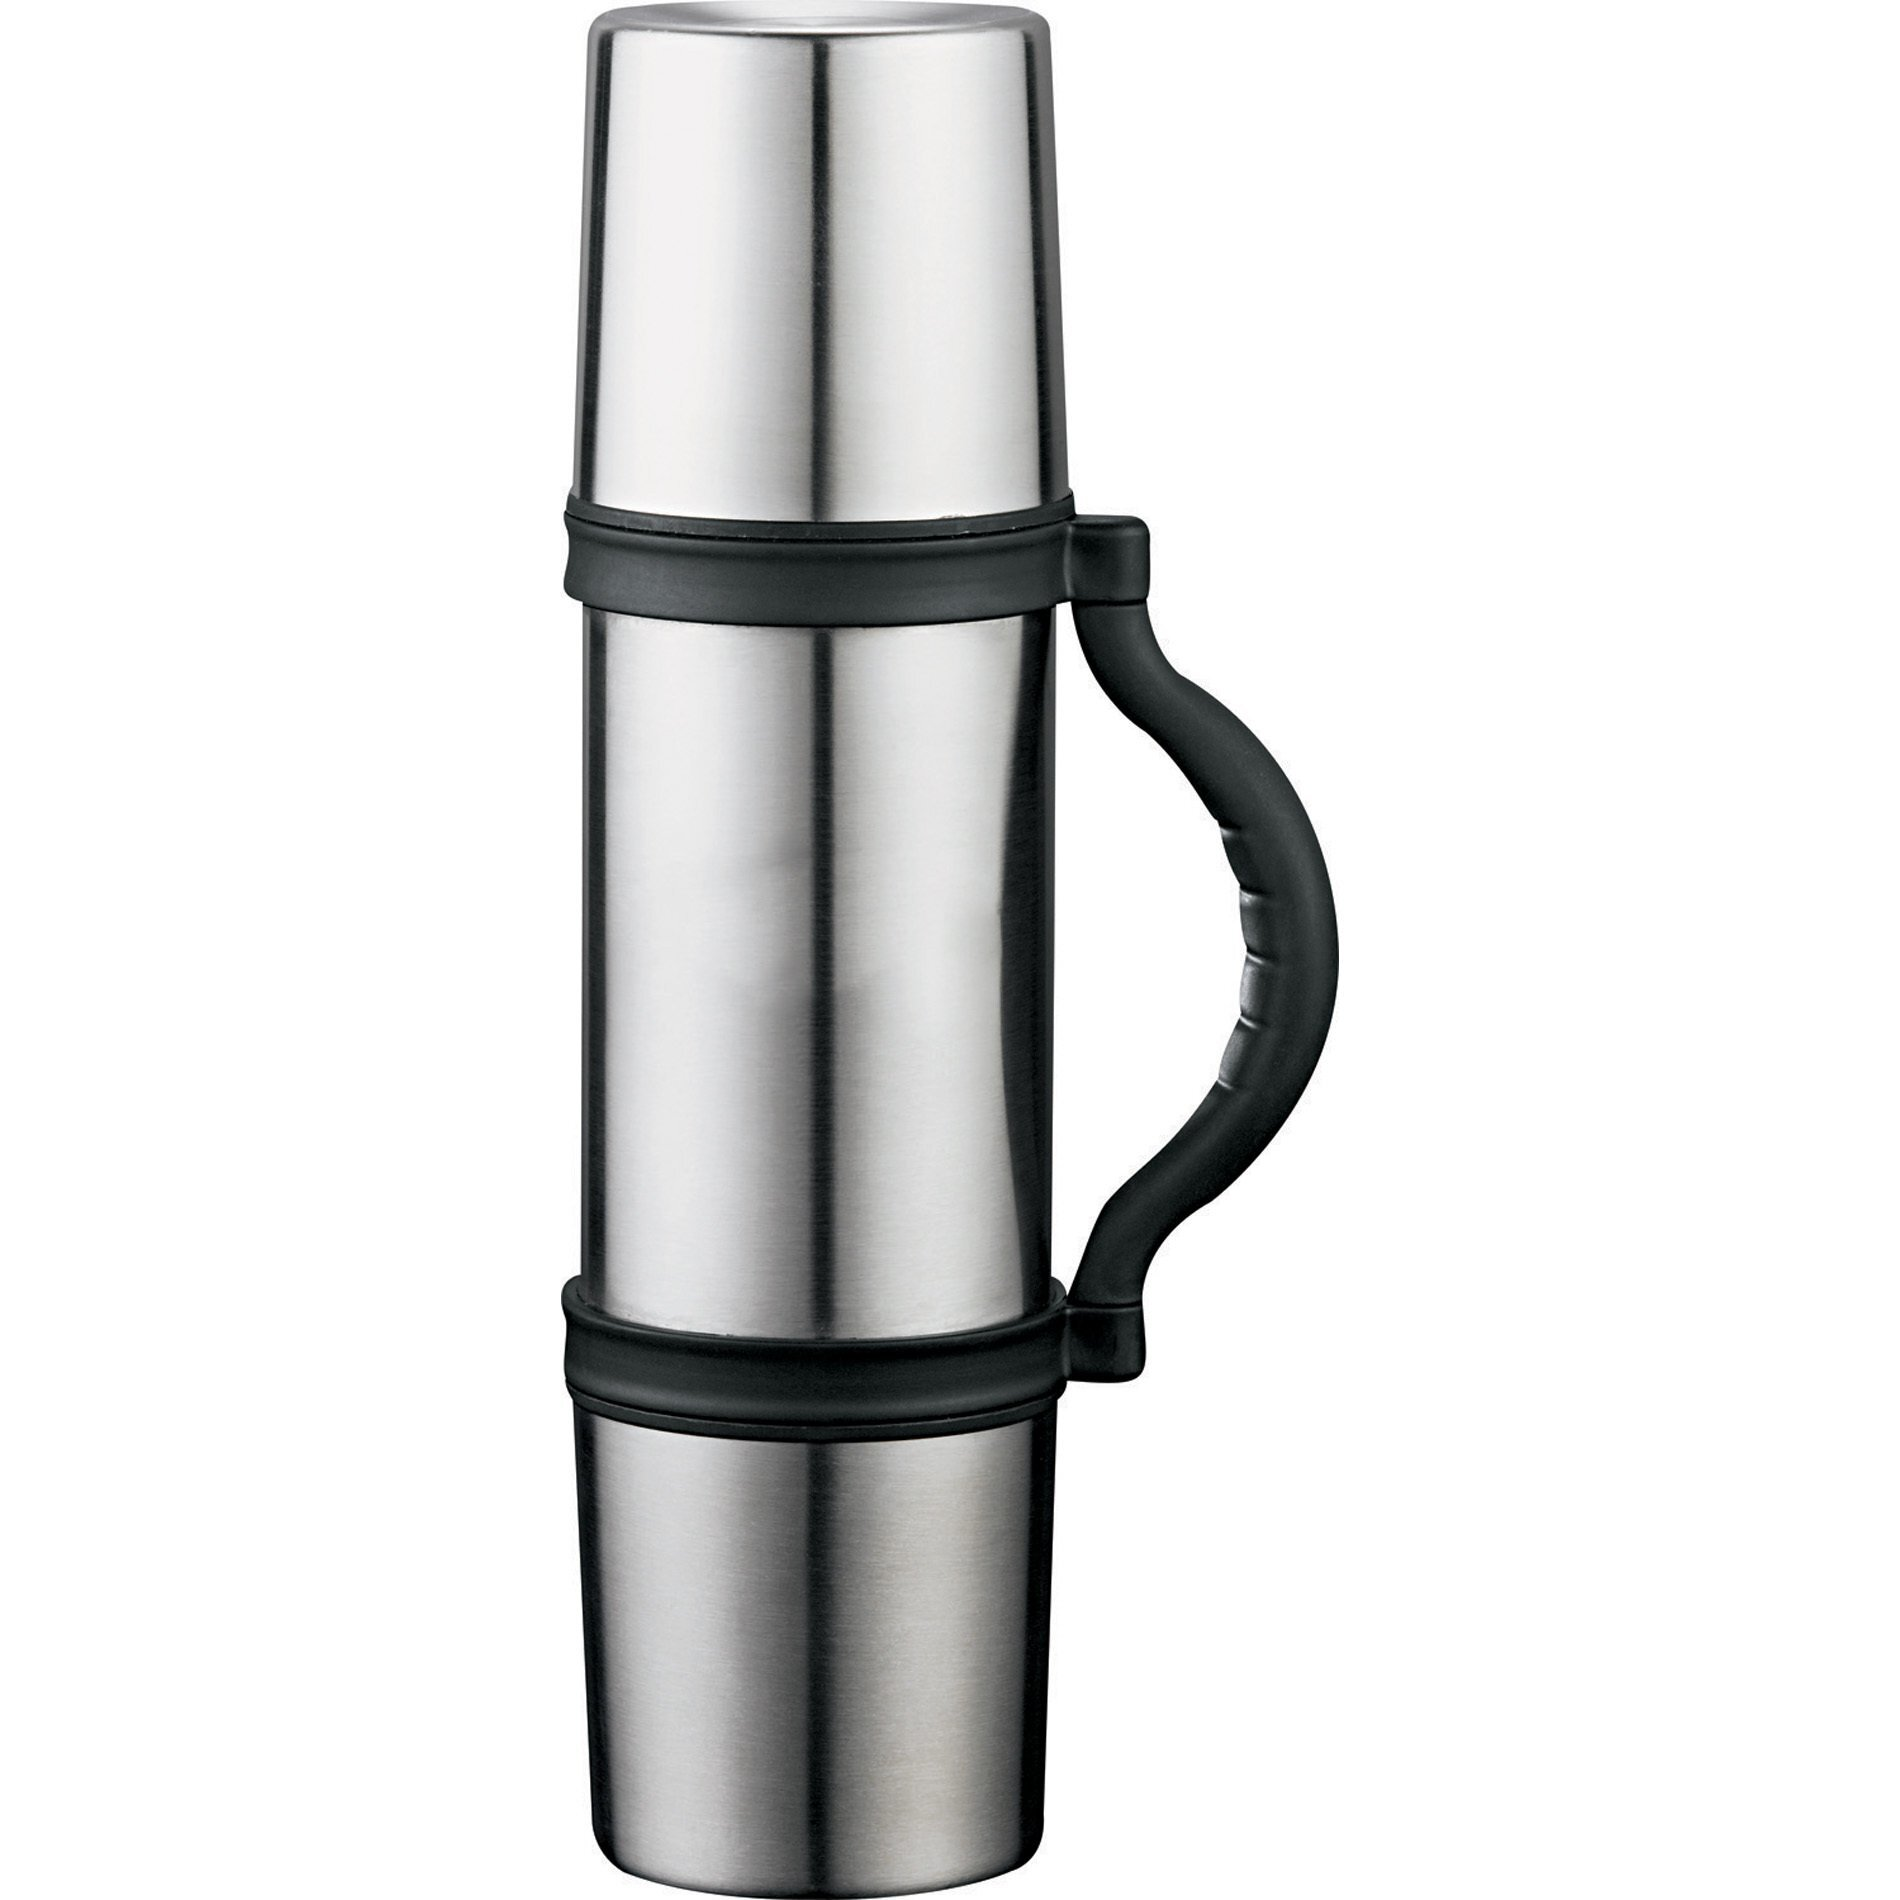 Zippo® 3 in 1 Thermo Bottle, 24oz.